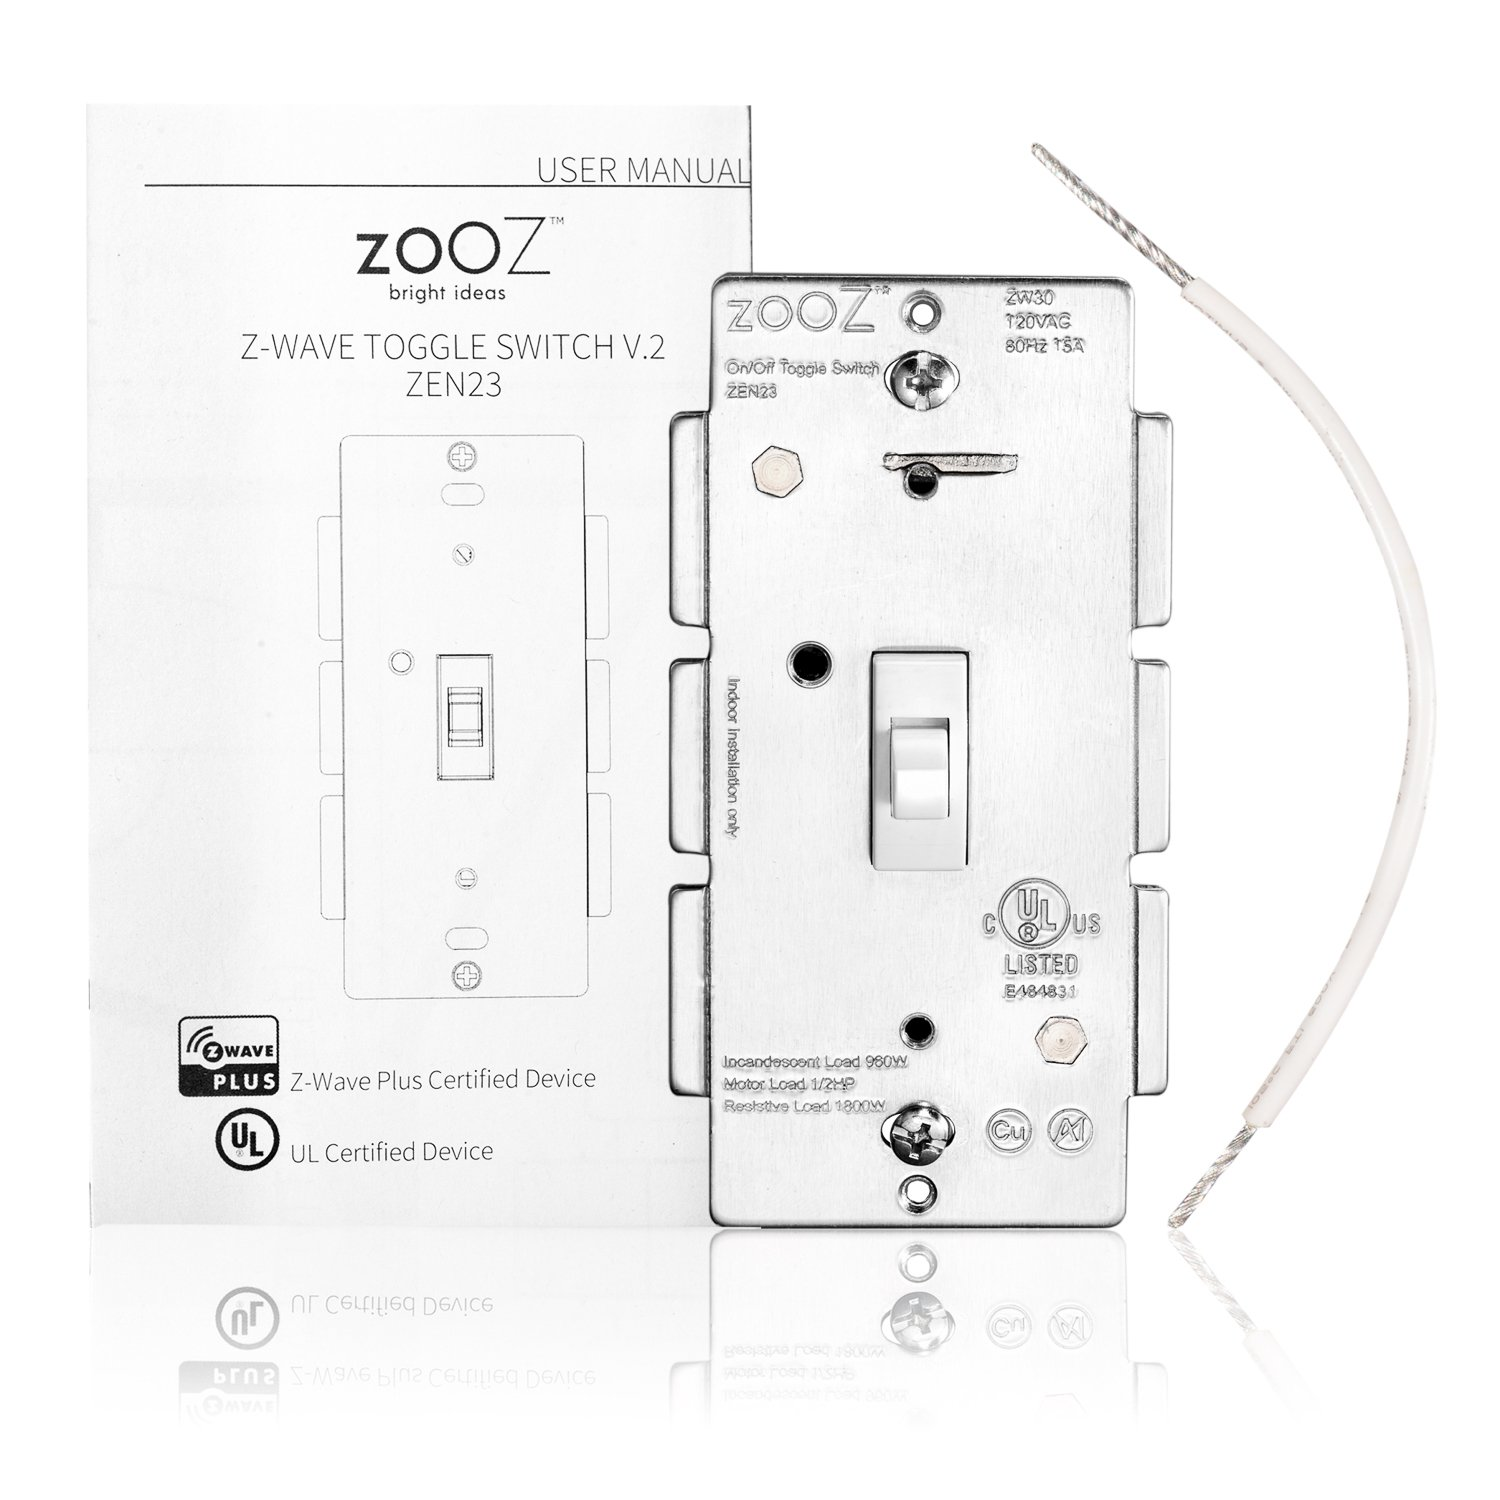 Zooz Z Wave Plus Toggle On Off Wall Switch Zen23 White Tk 80 Wiring Diagram Ver 20 Works With Existing Regular 3 Way Computers Accessories